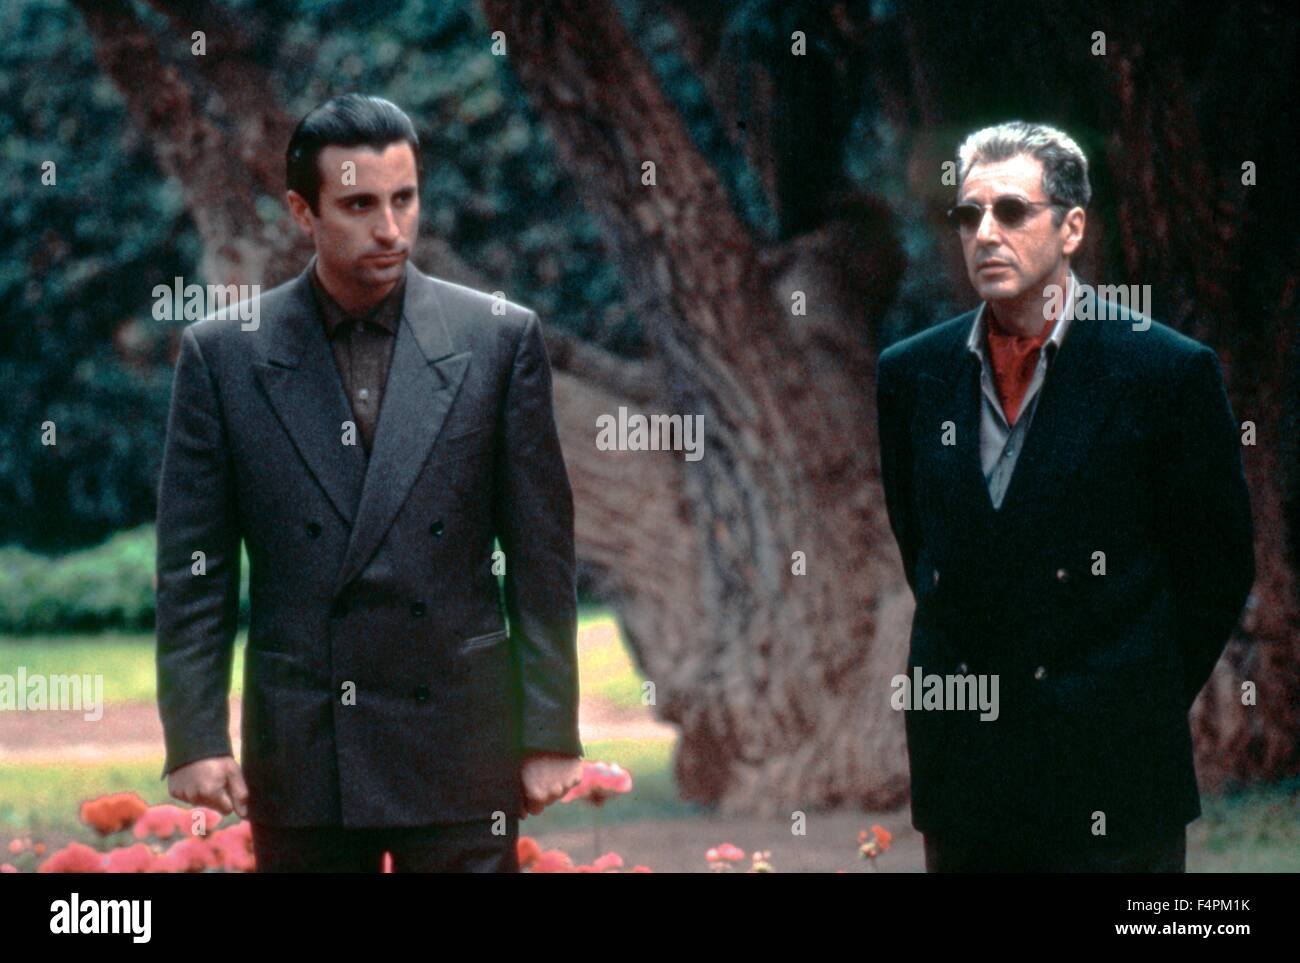 Andy Garcia and Al Pacino / The Godfather: Part III / 1990 directed by Francis Ford Coppola [Paramount Pictures] - Stock Image